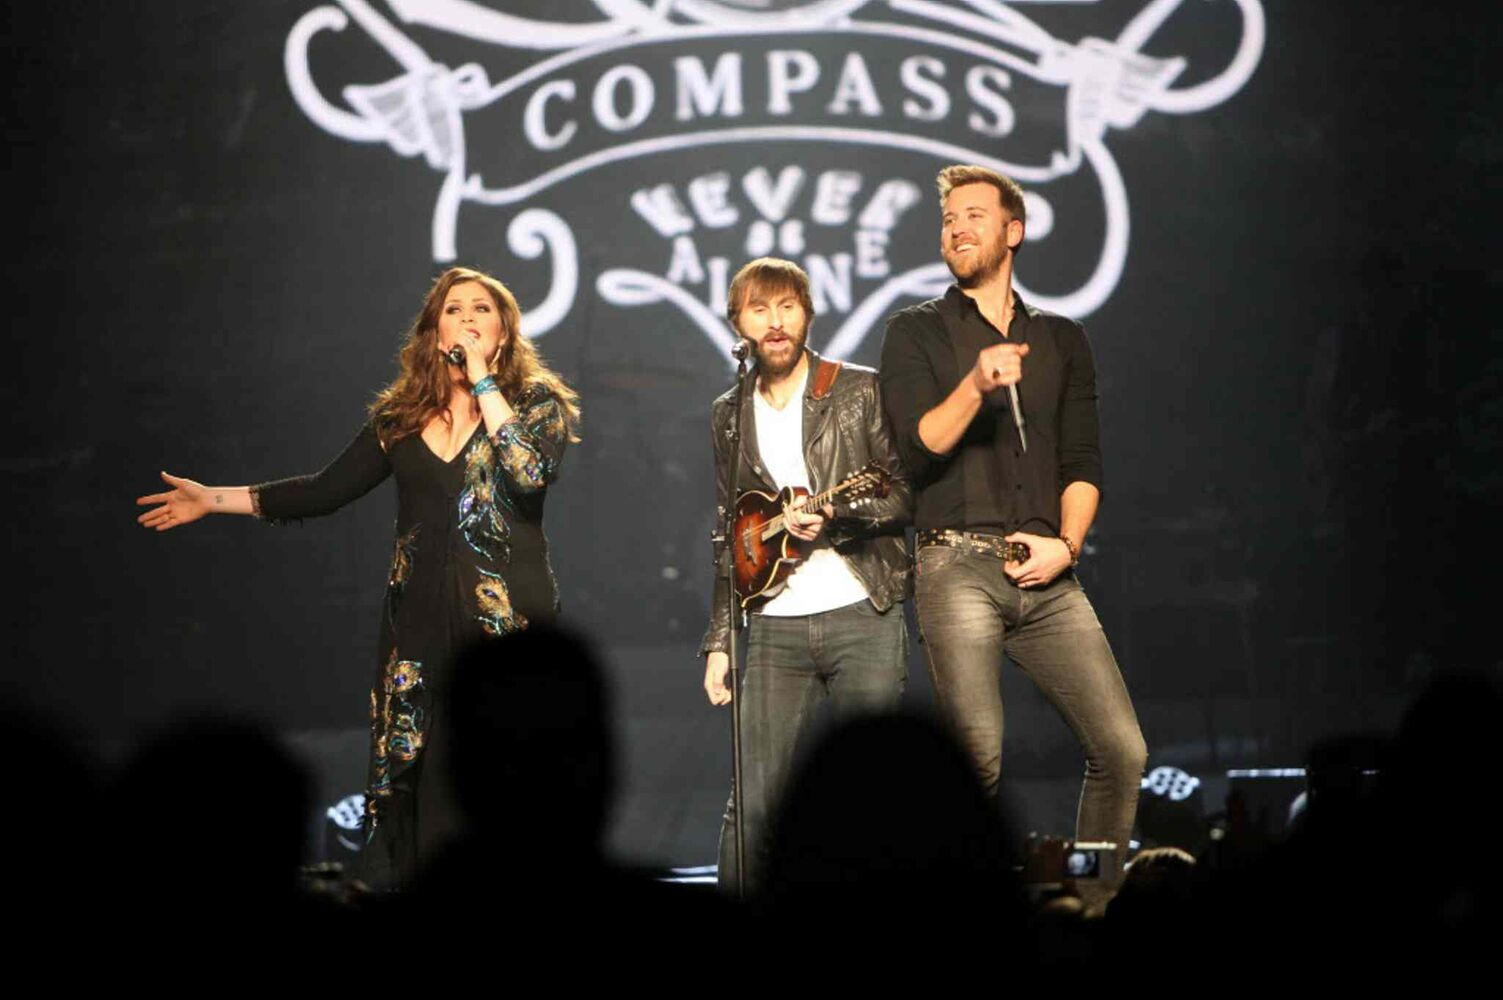 Lady Antebellum lead singers Charles Kelley and Hillary Scott sing with guitarist Dave Haywood.    (Ruth Bonneville / Winnipeg Free Press)